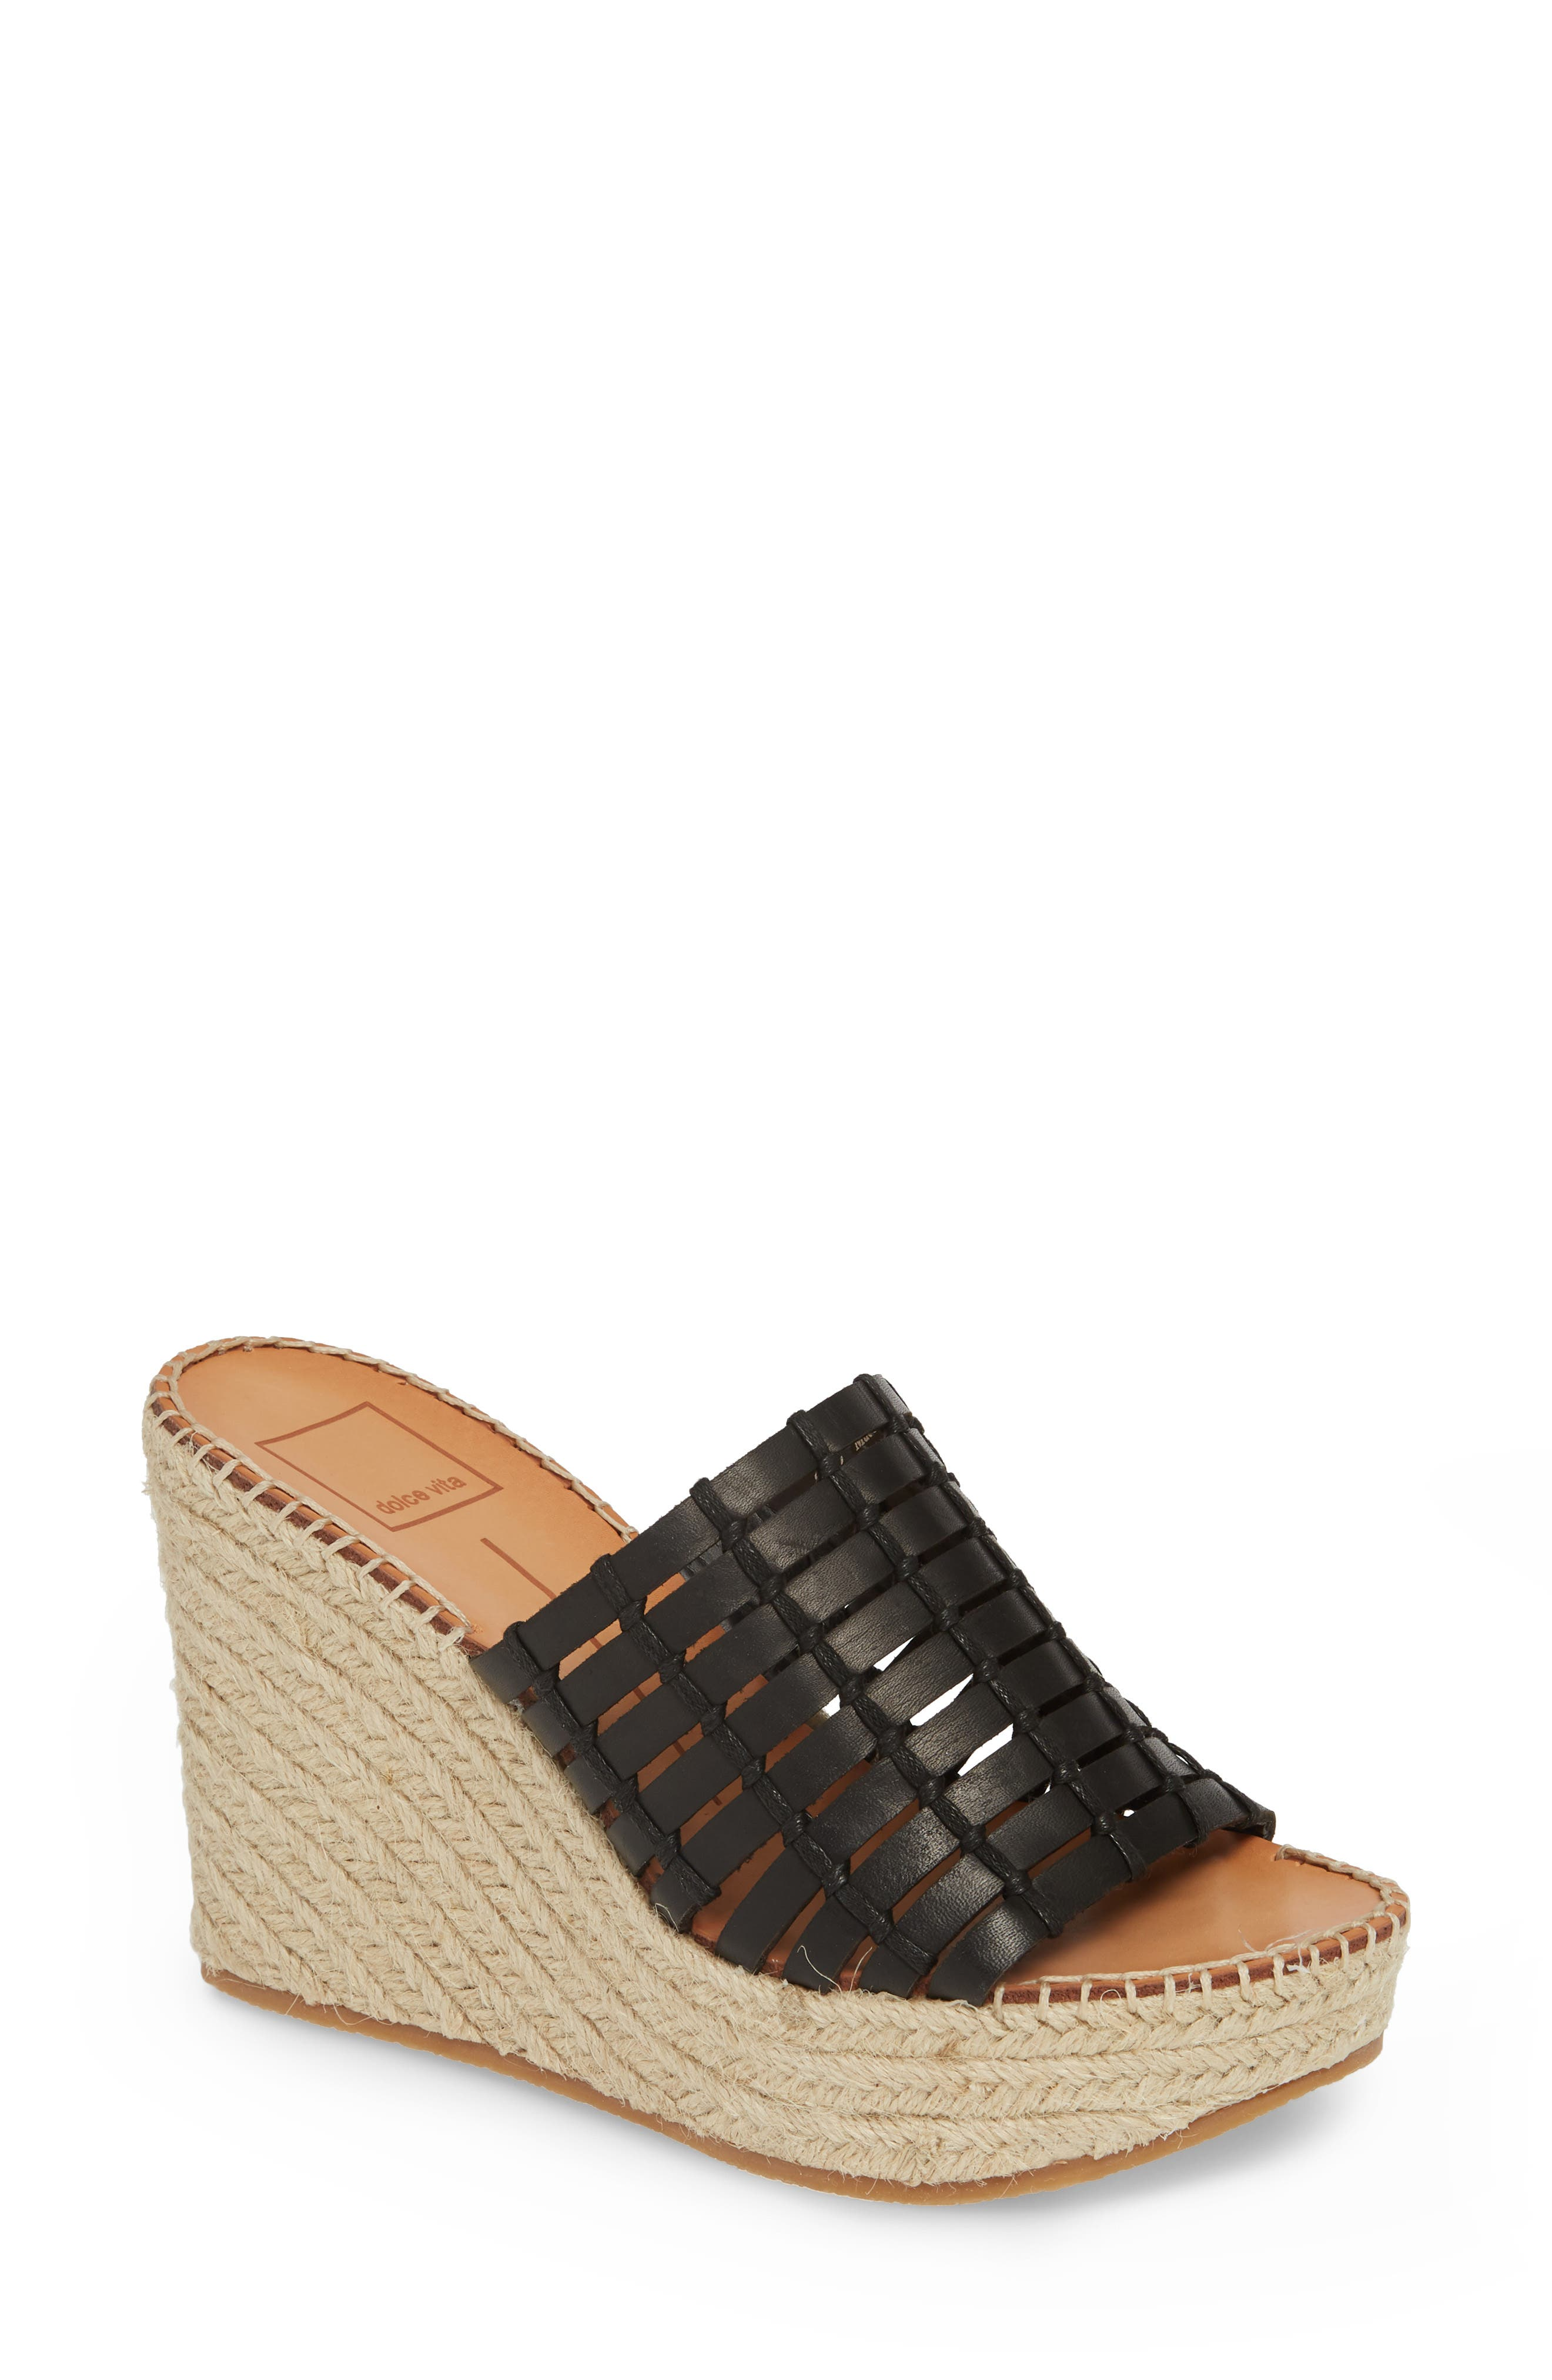 DOLCE VITA Prue Espadrille Wedge Slide Sandal, Main, color, BLACK LEATHER